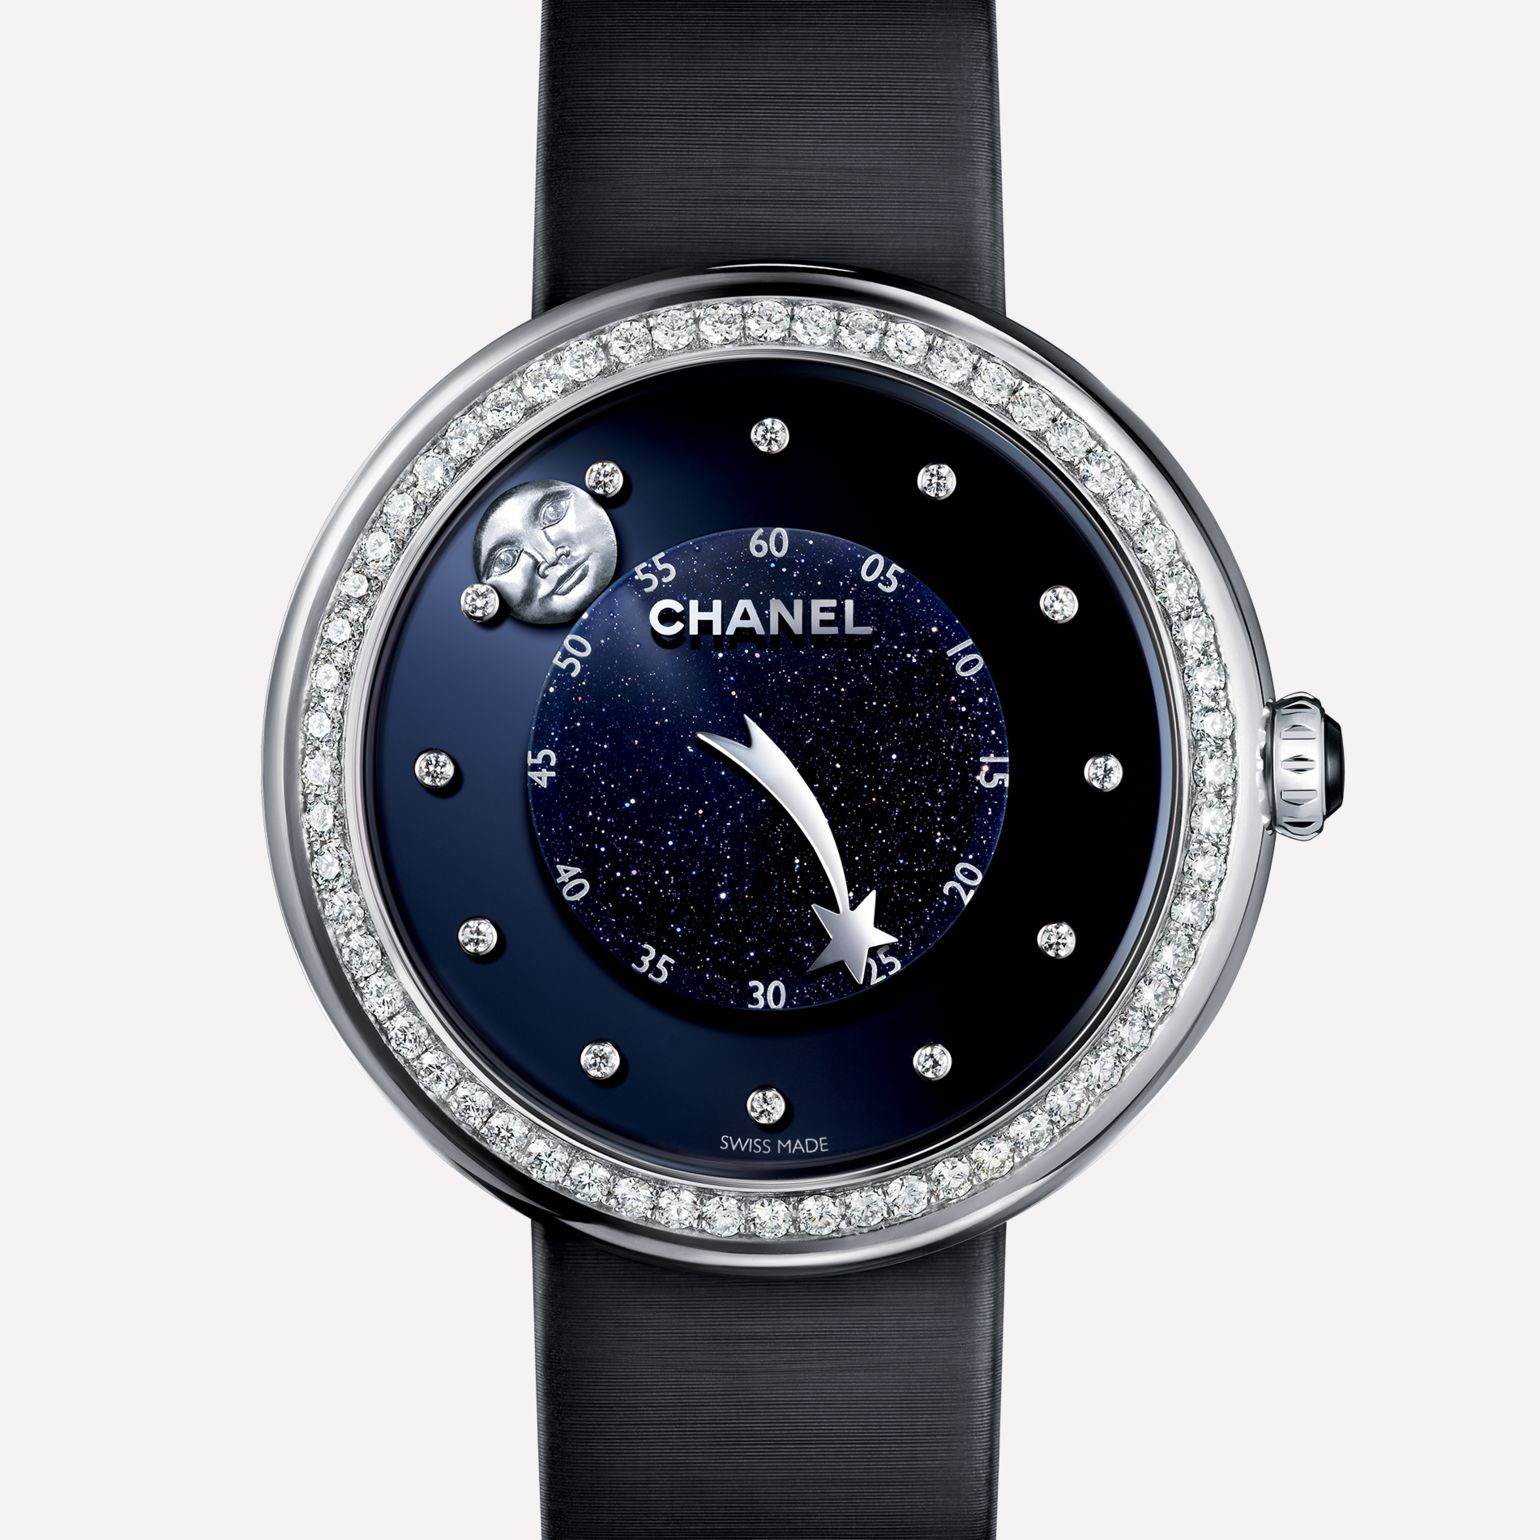 Mademoiselle Privé Aventurine dial, man-in-the-moon and comet motif hands, diamond indicators